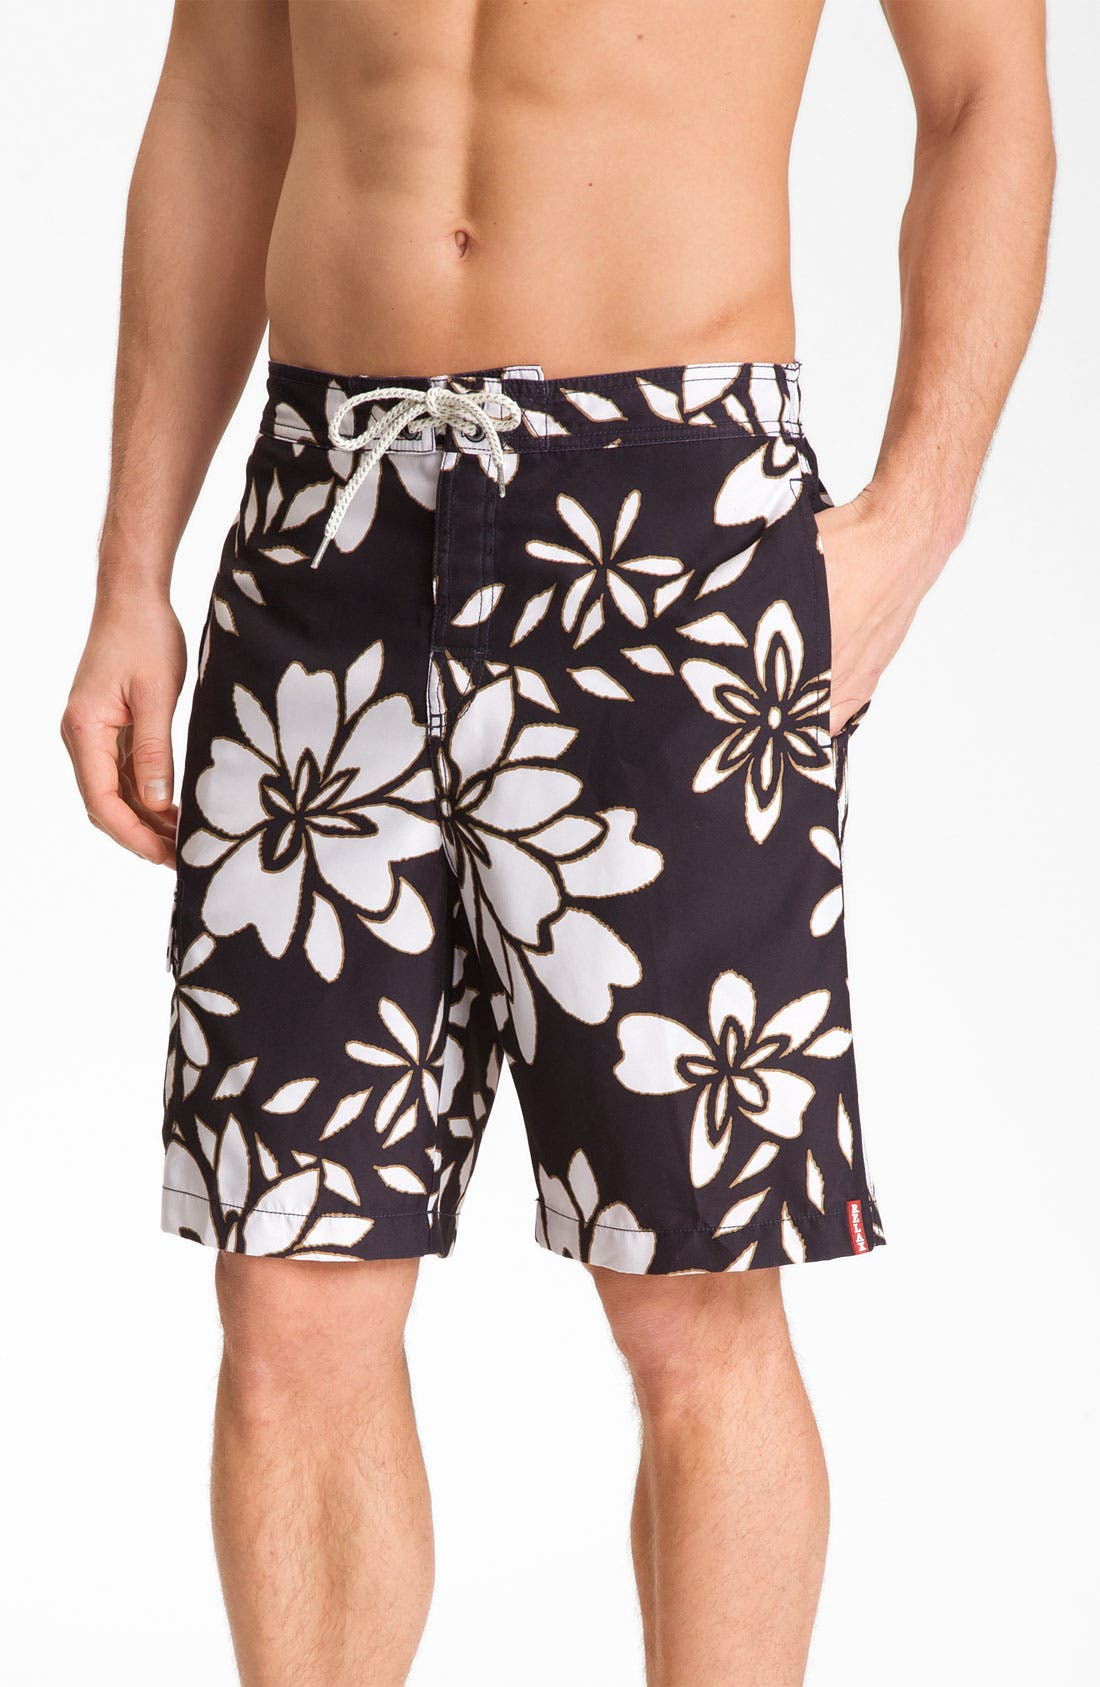 Main Image - Tommy Bahama 'Stencil Me In' Swim Trunks (Big & Tall)